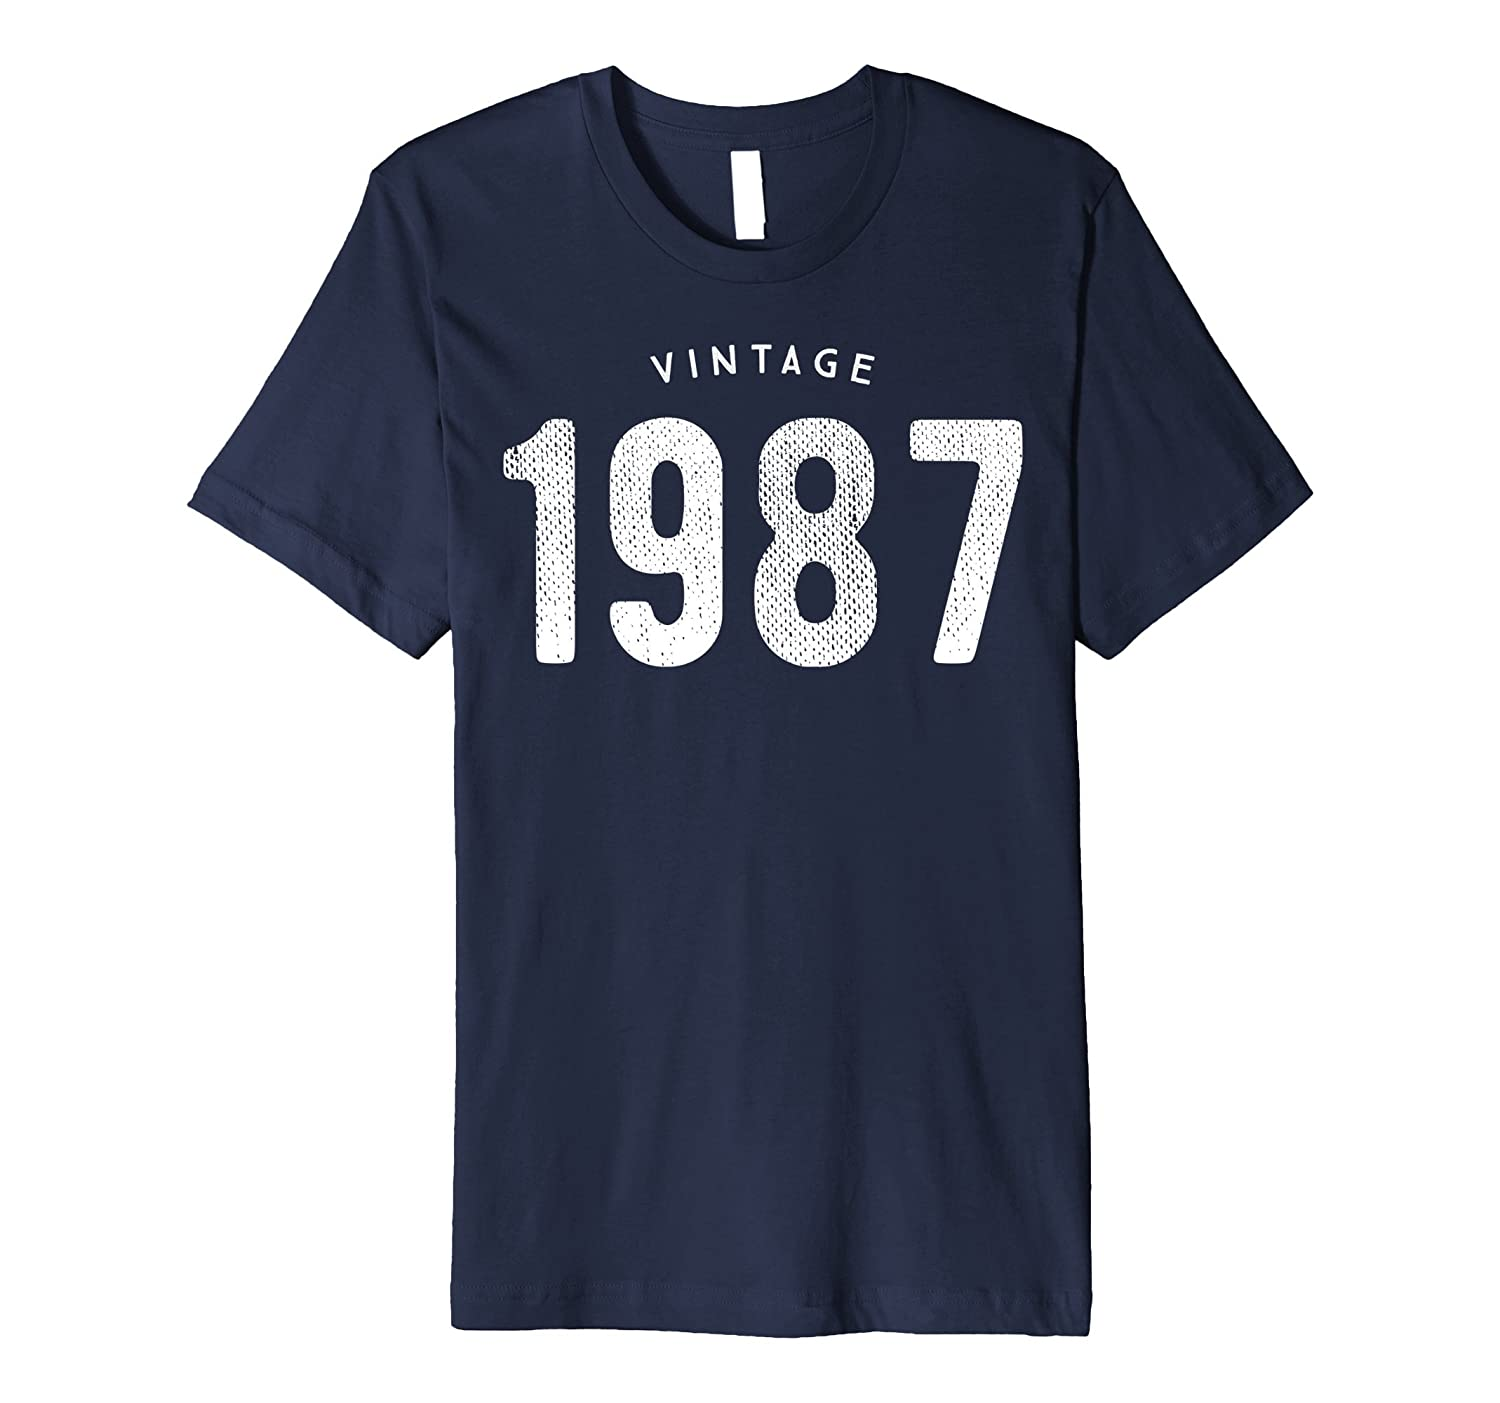 30th Birthday Shirt For Men & Women - VINTAGE 1987-TH